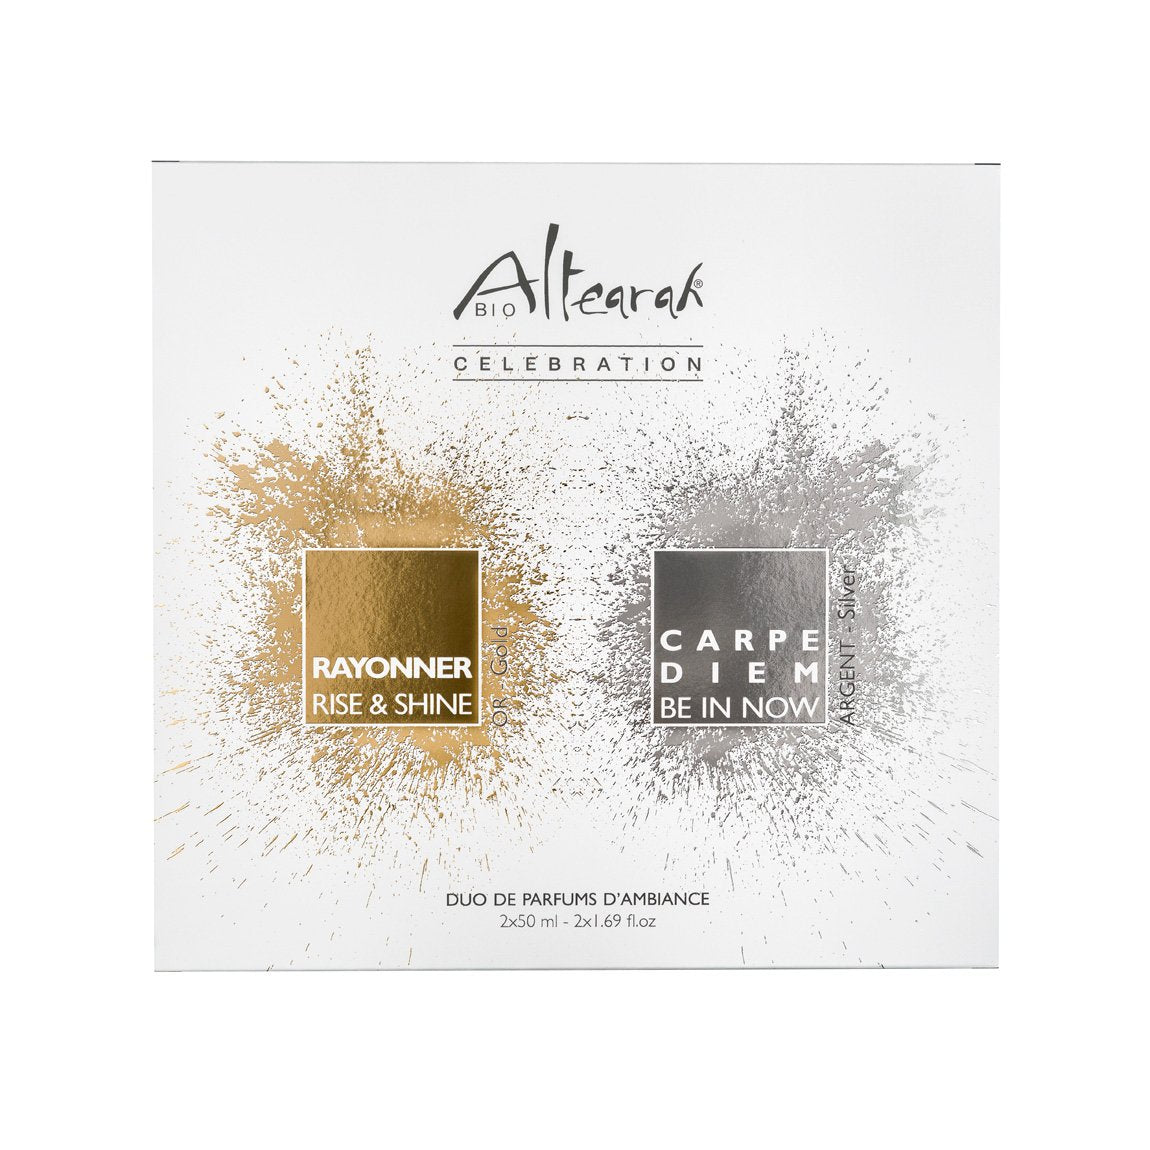 Altearah USA Ambiance Perfumes Celebration Box